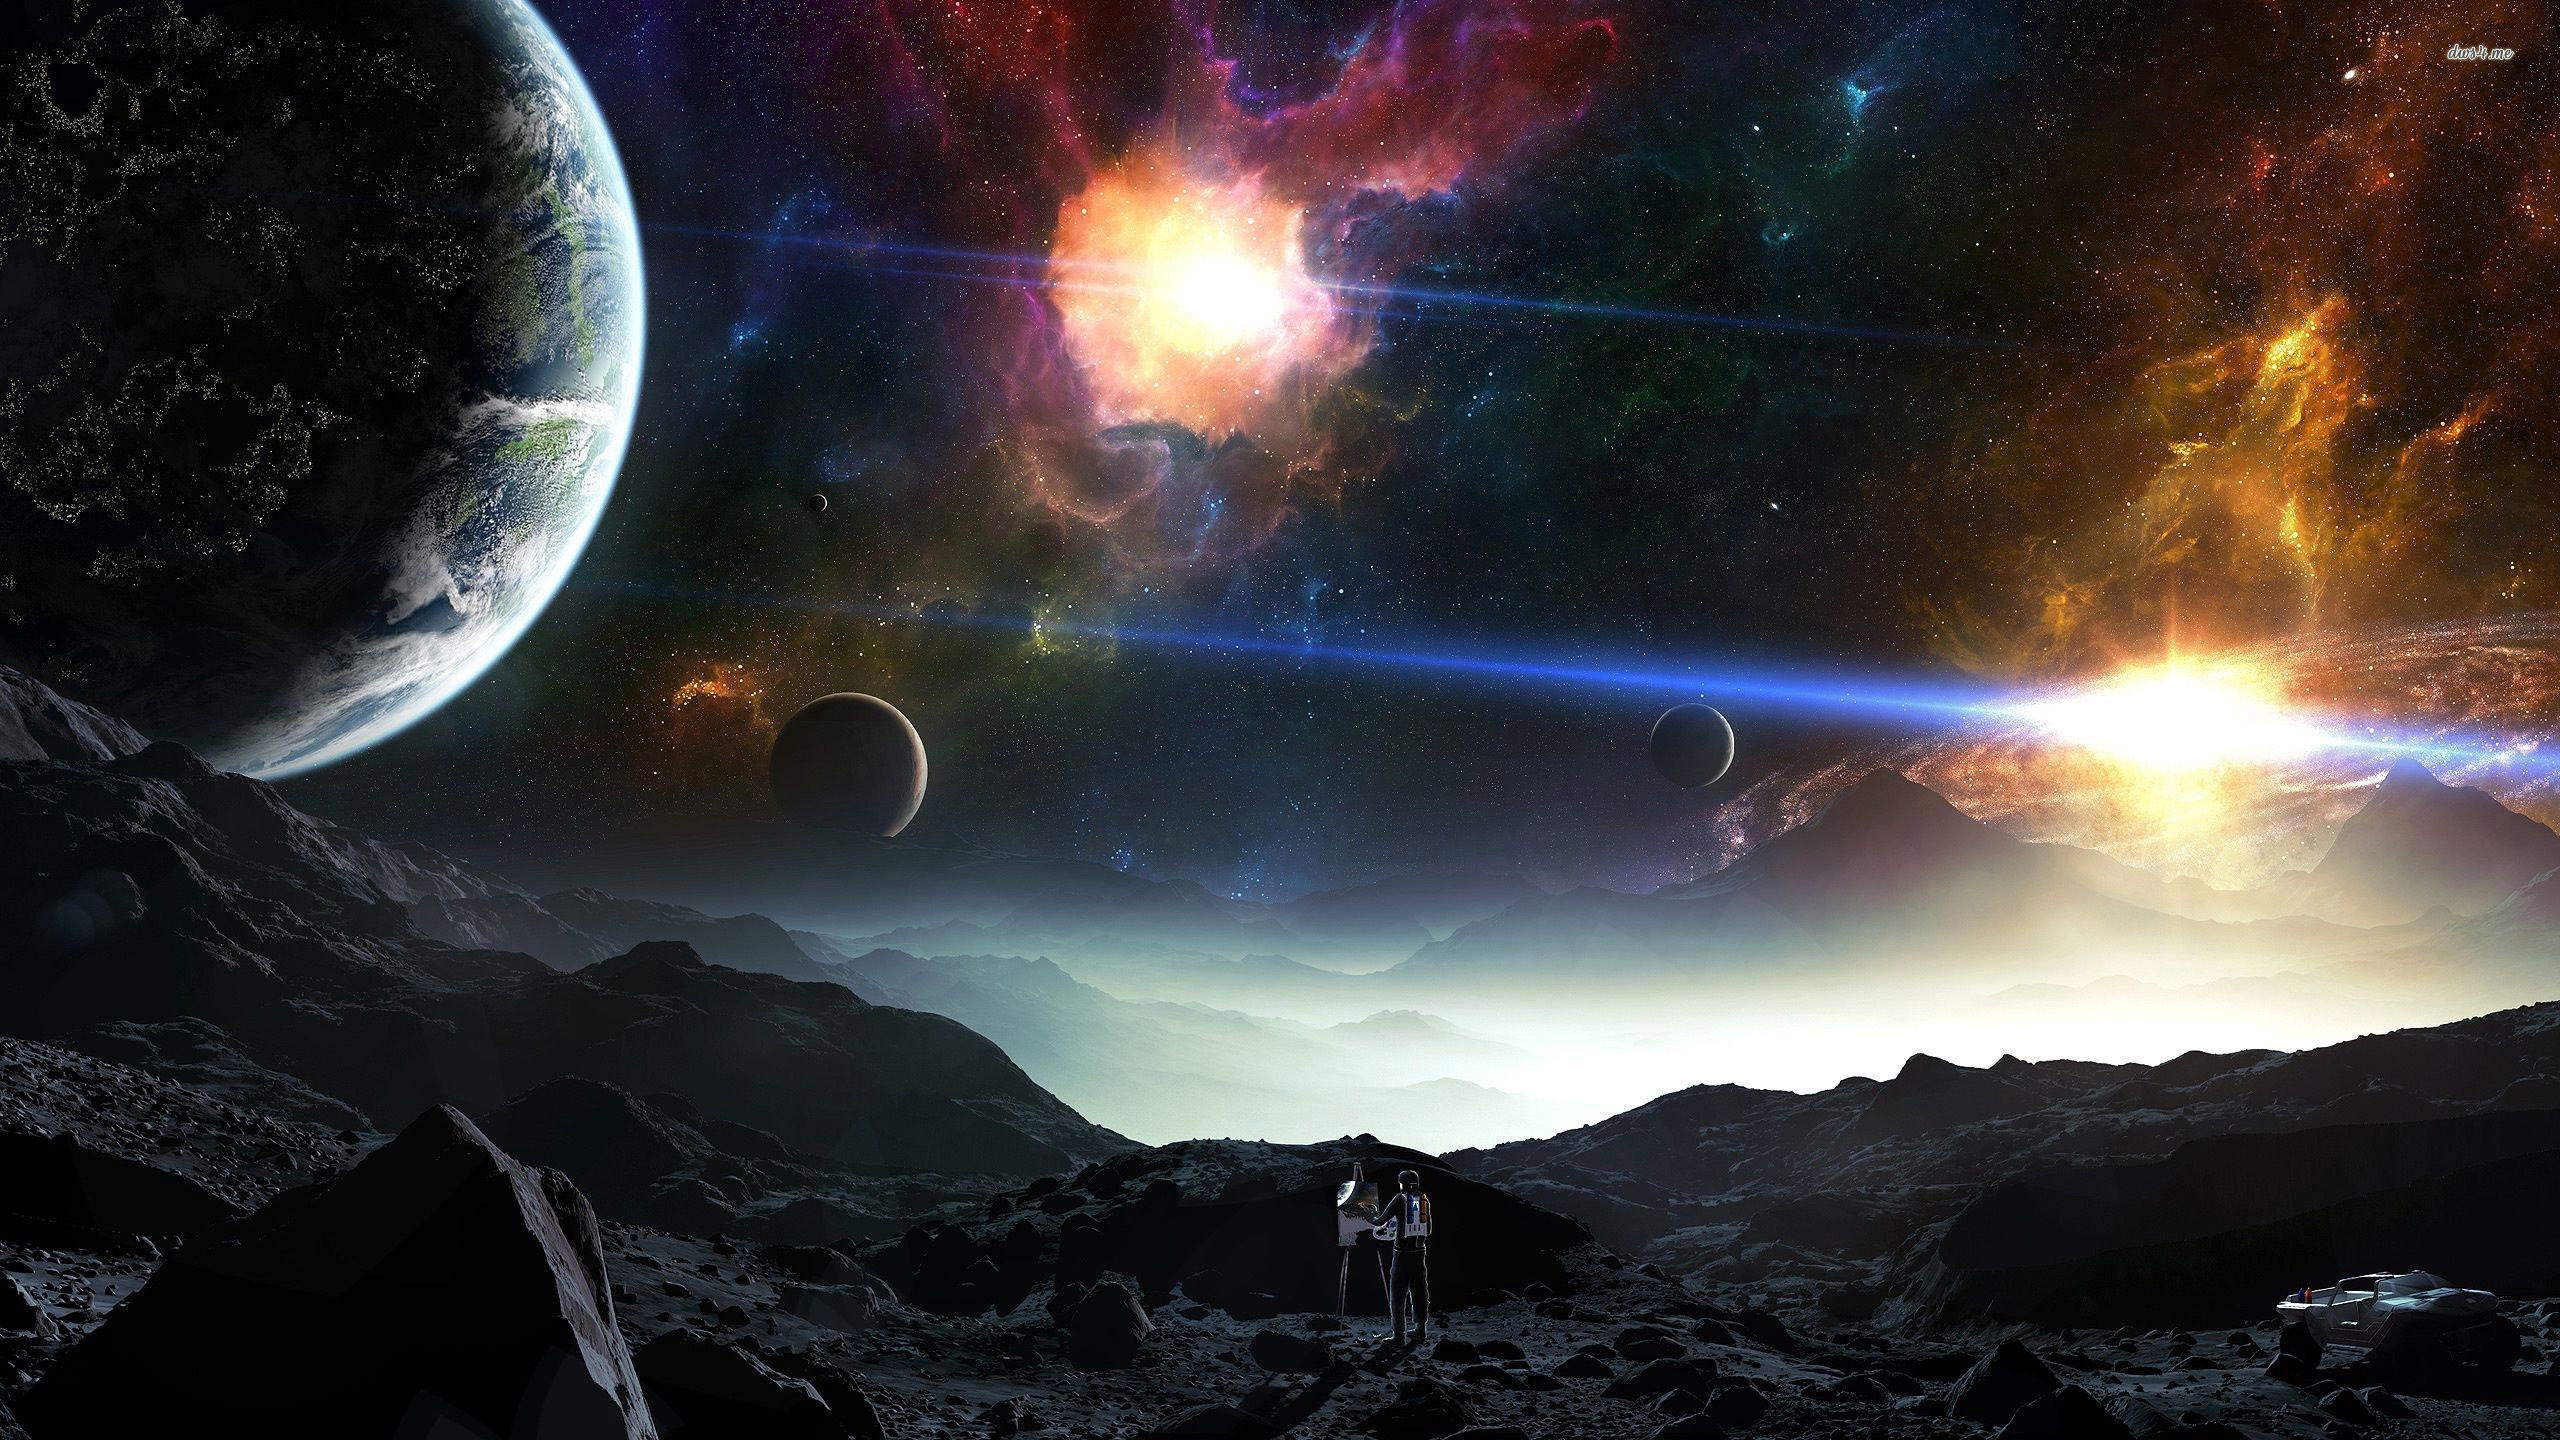 18 Fantasy Astronomy Hd Wallpapers: 2K Space Wallpapers (68+ Images